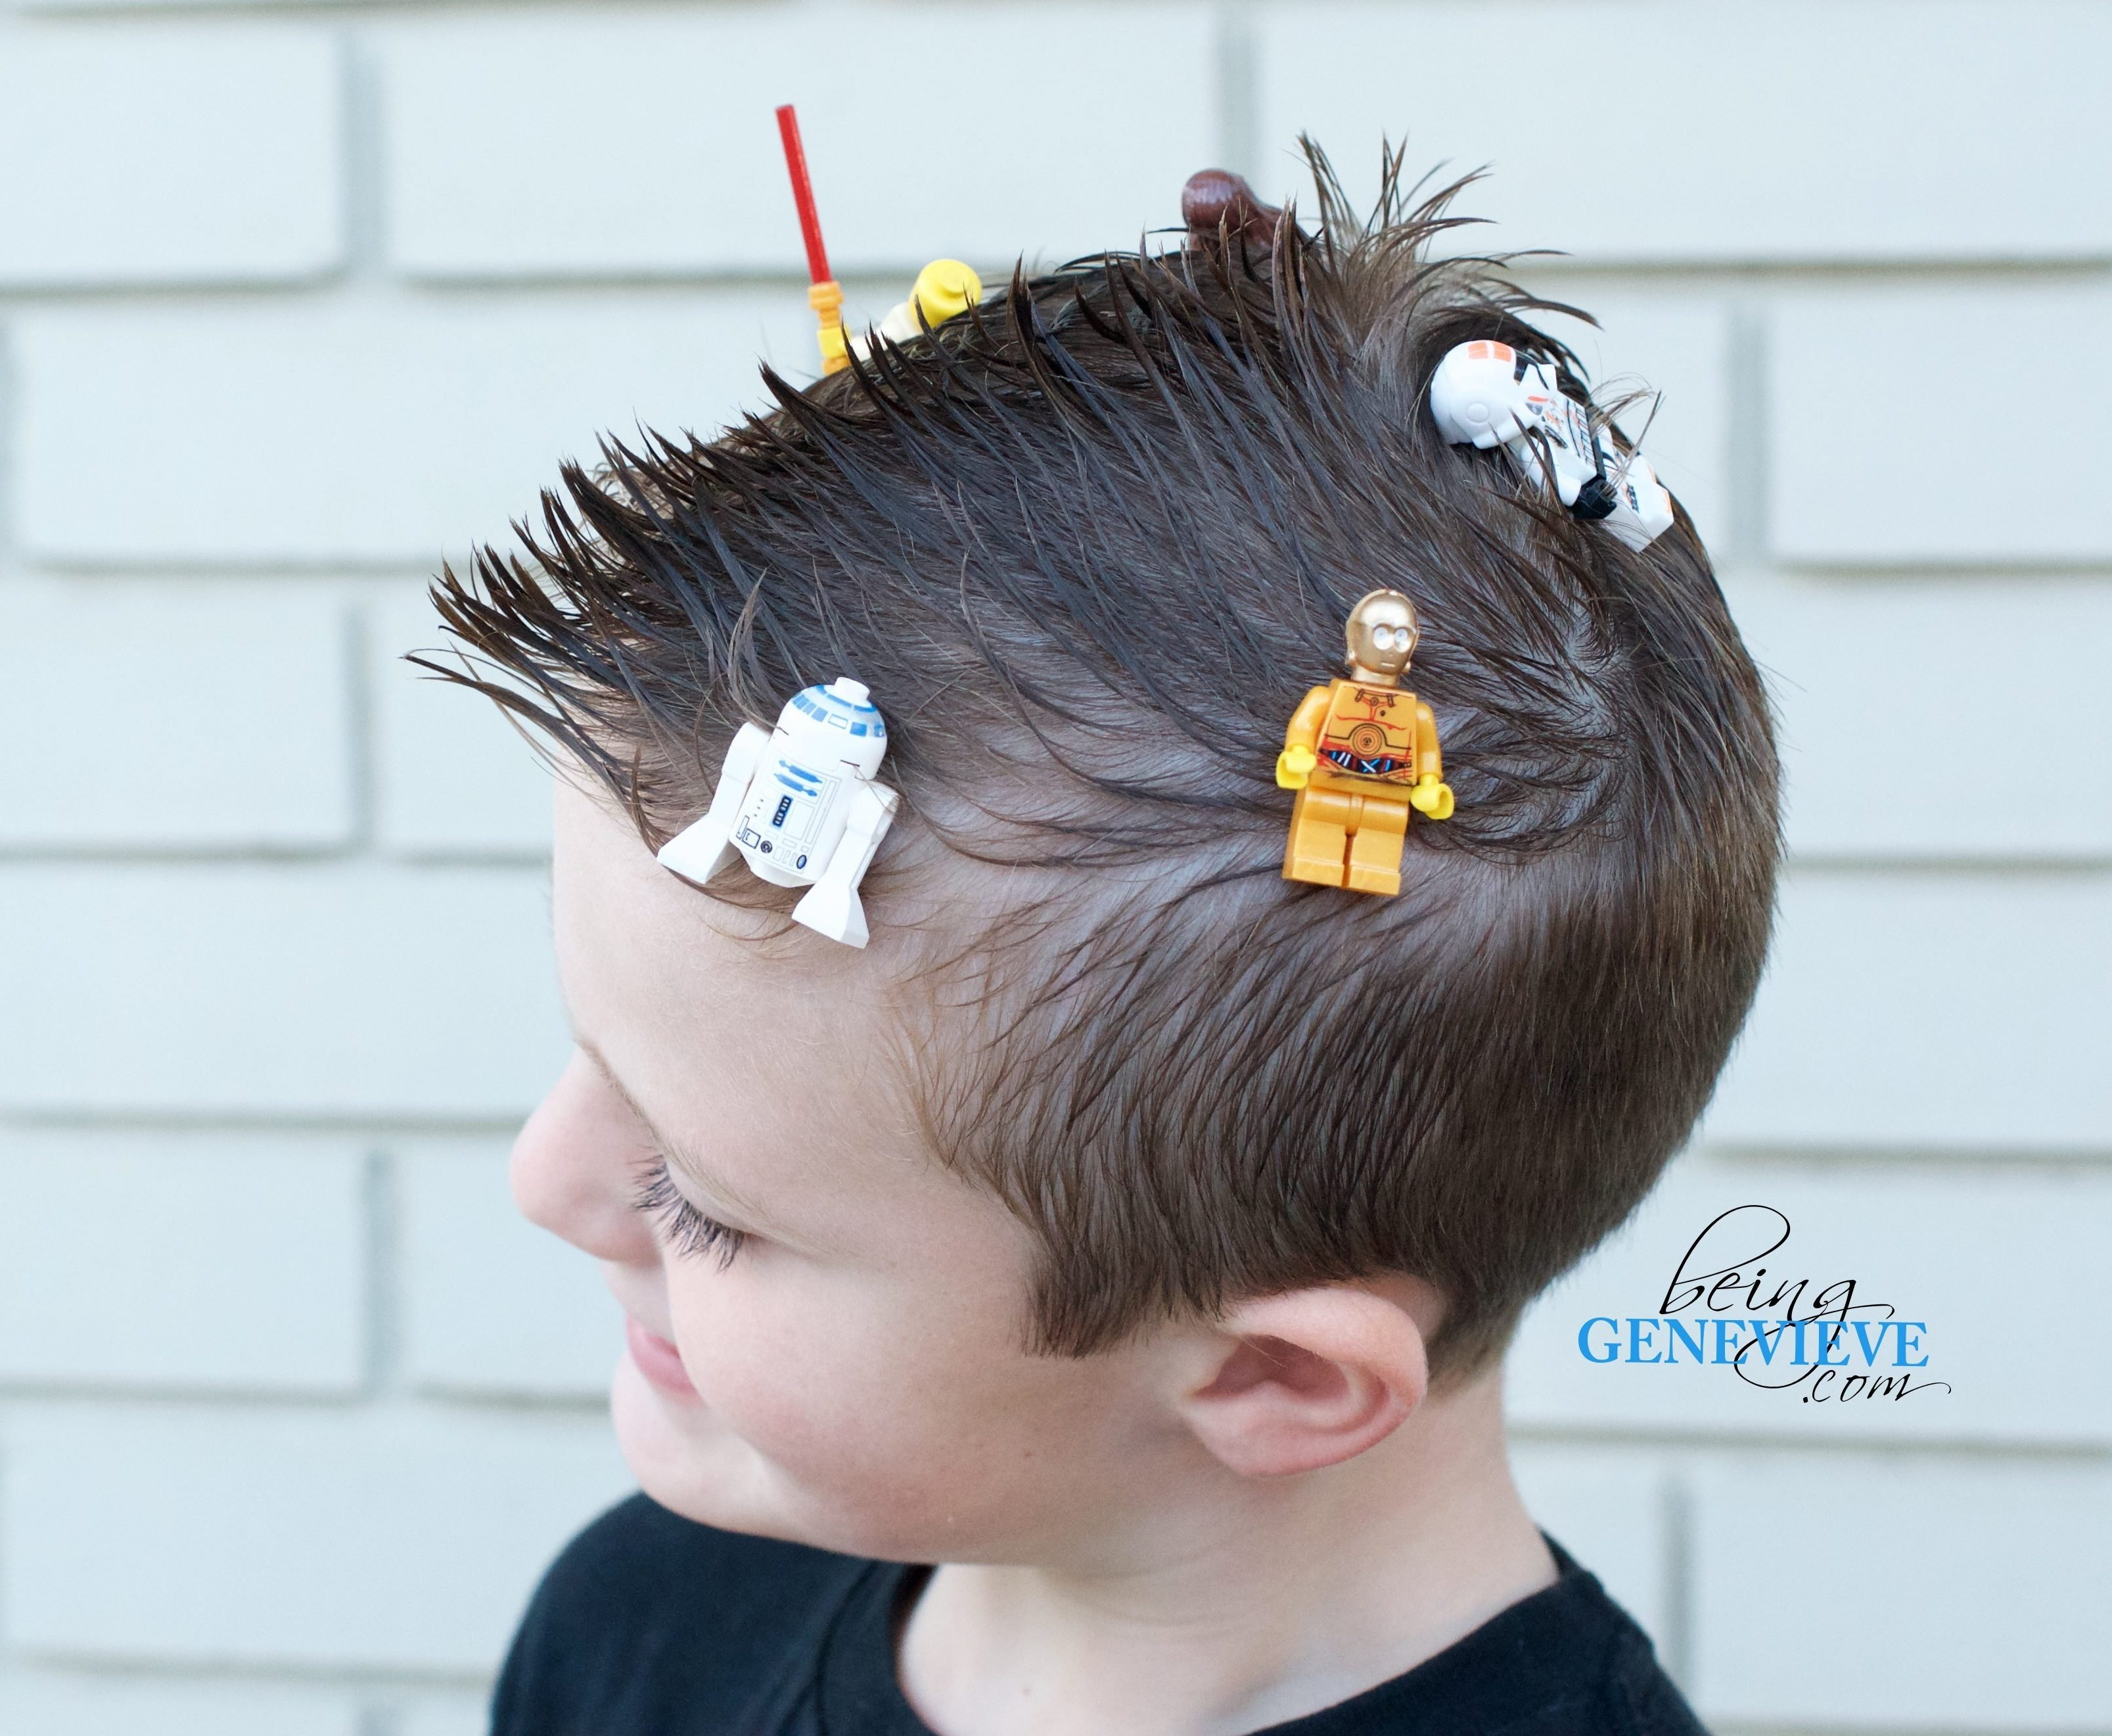 10 Elegant Crazy Hair Ideas For Boys crazy awesome lego hair being genevieve